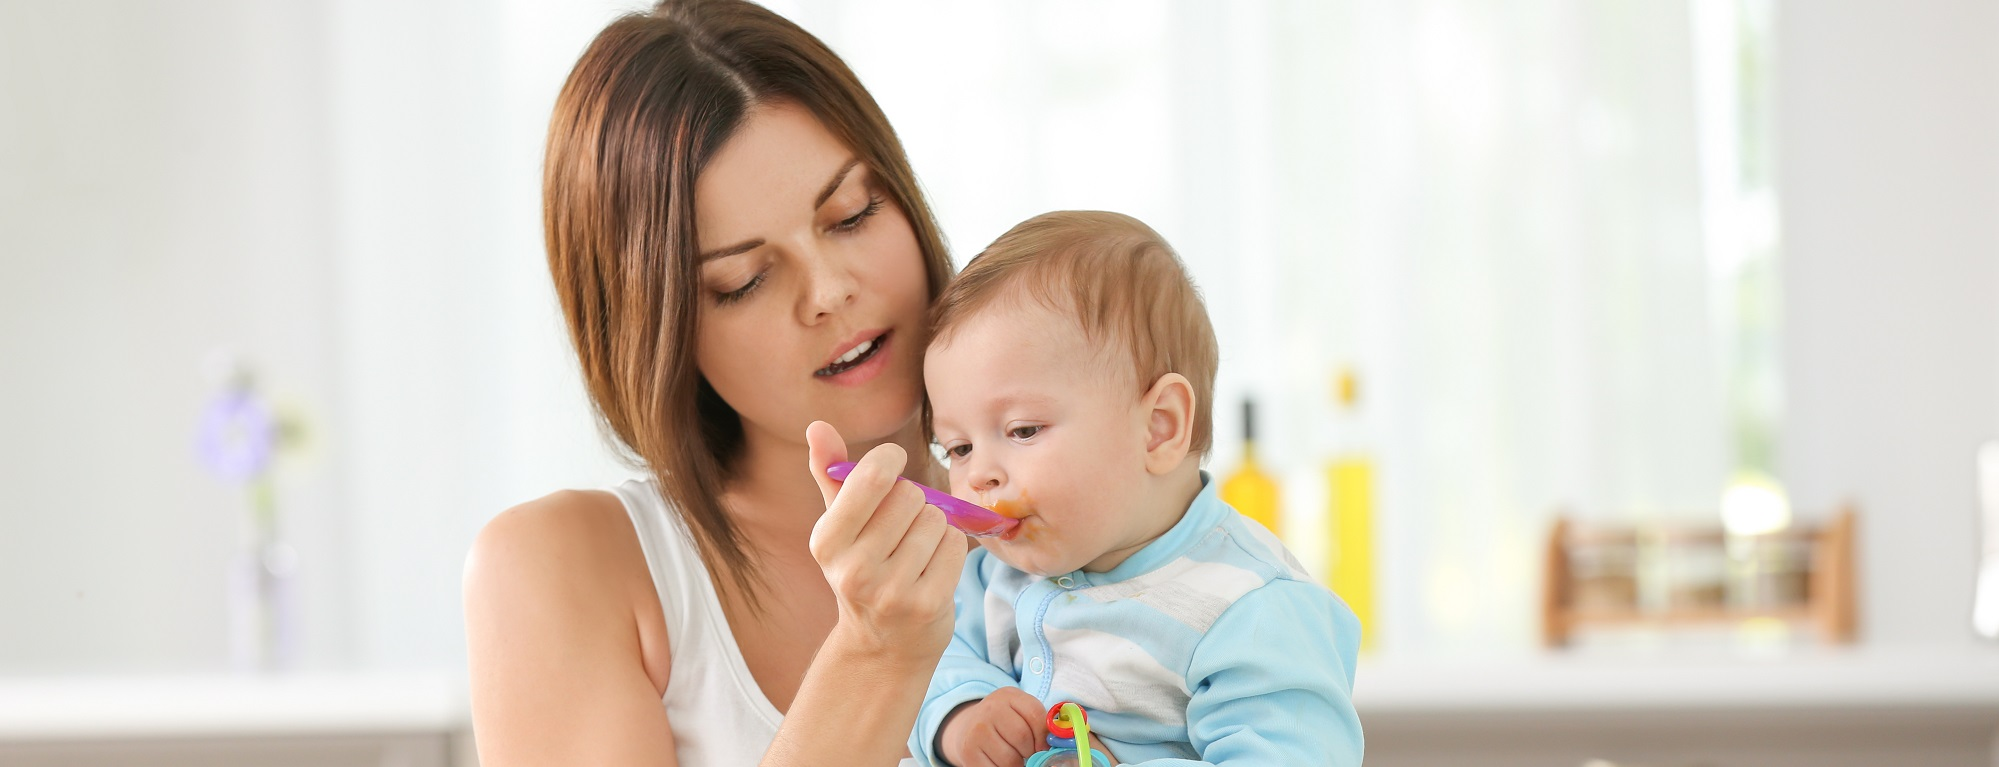 10-Month-Old's Feeding Schedule: What to Feed a 10 Months Old Baby